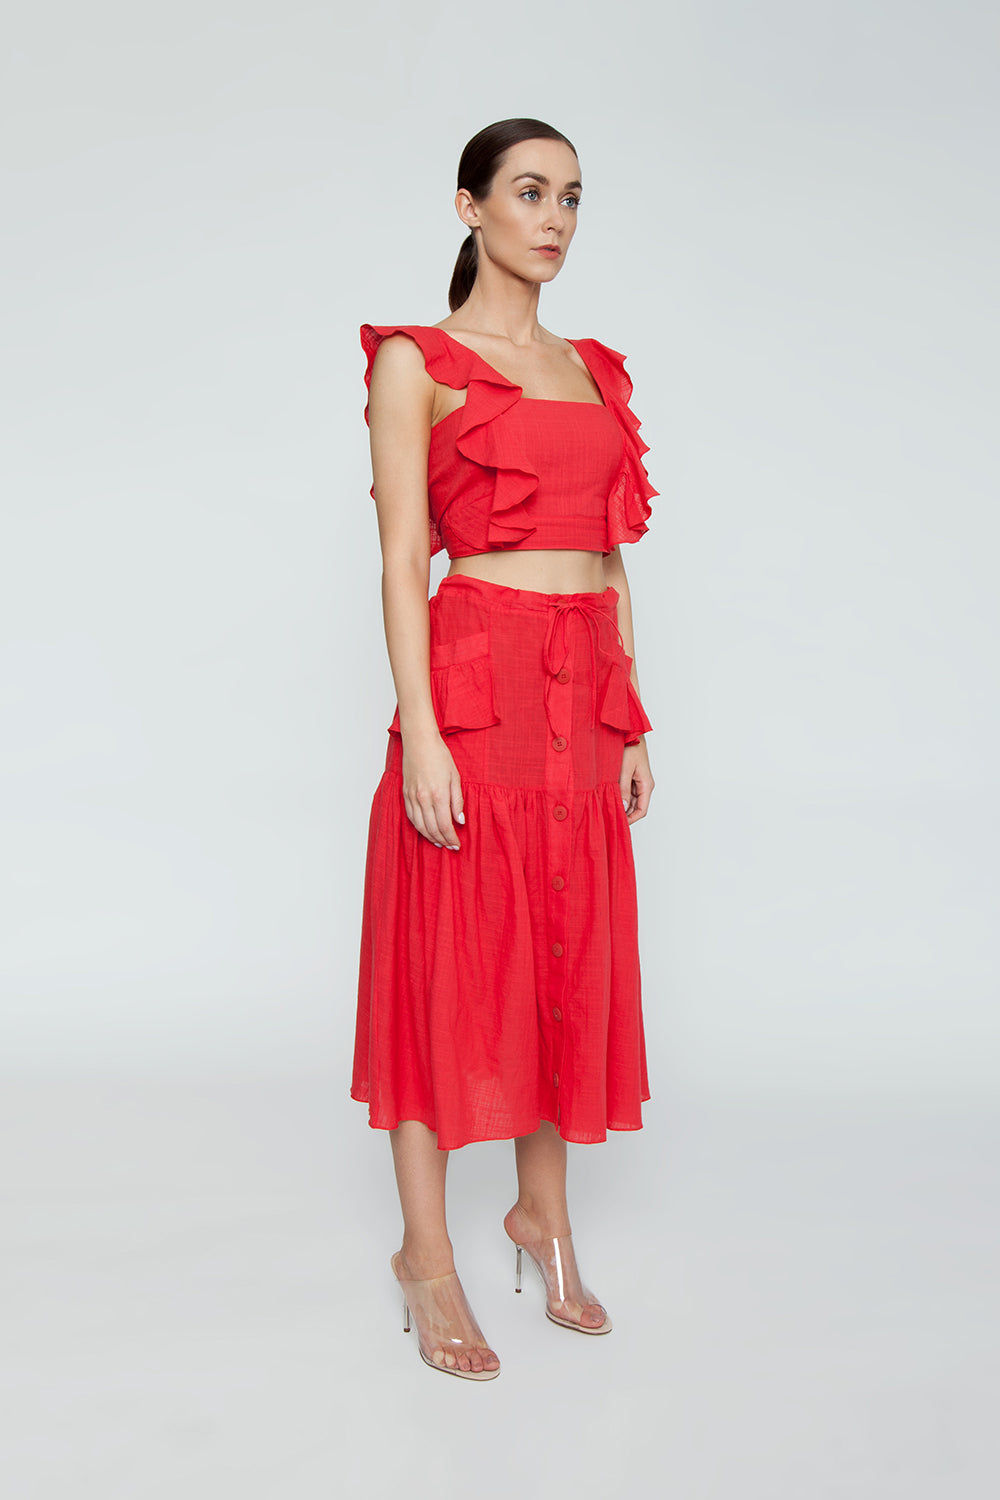 CLUBE BOSSA Lubba Cropped Blouse - Pepper Red Top | Pepper Red| Clube Bossa Lubba Cropped Blouse - Pepper Red. Features:  Square neckline Ruffle shoulders Back lace-up fastening 100% Cotton Side View